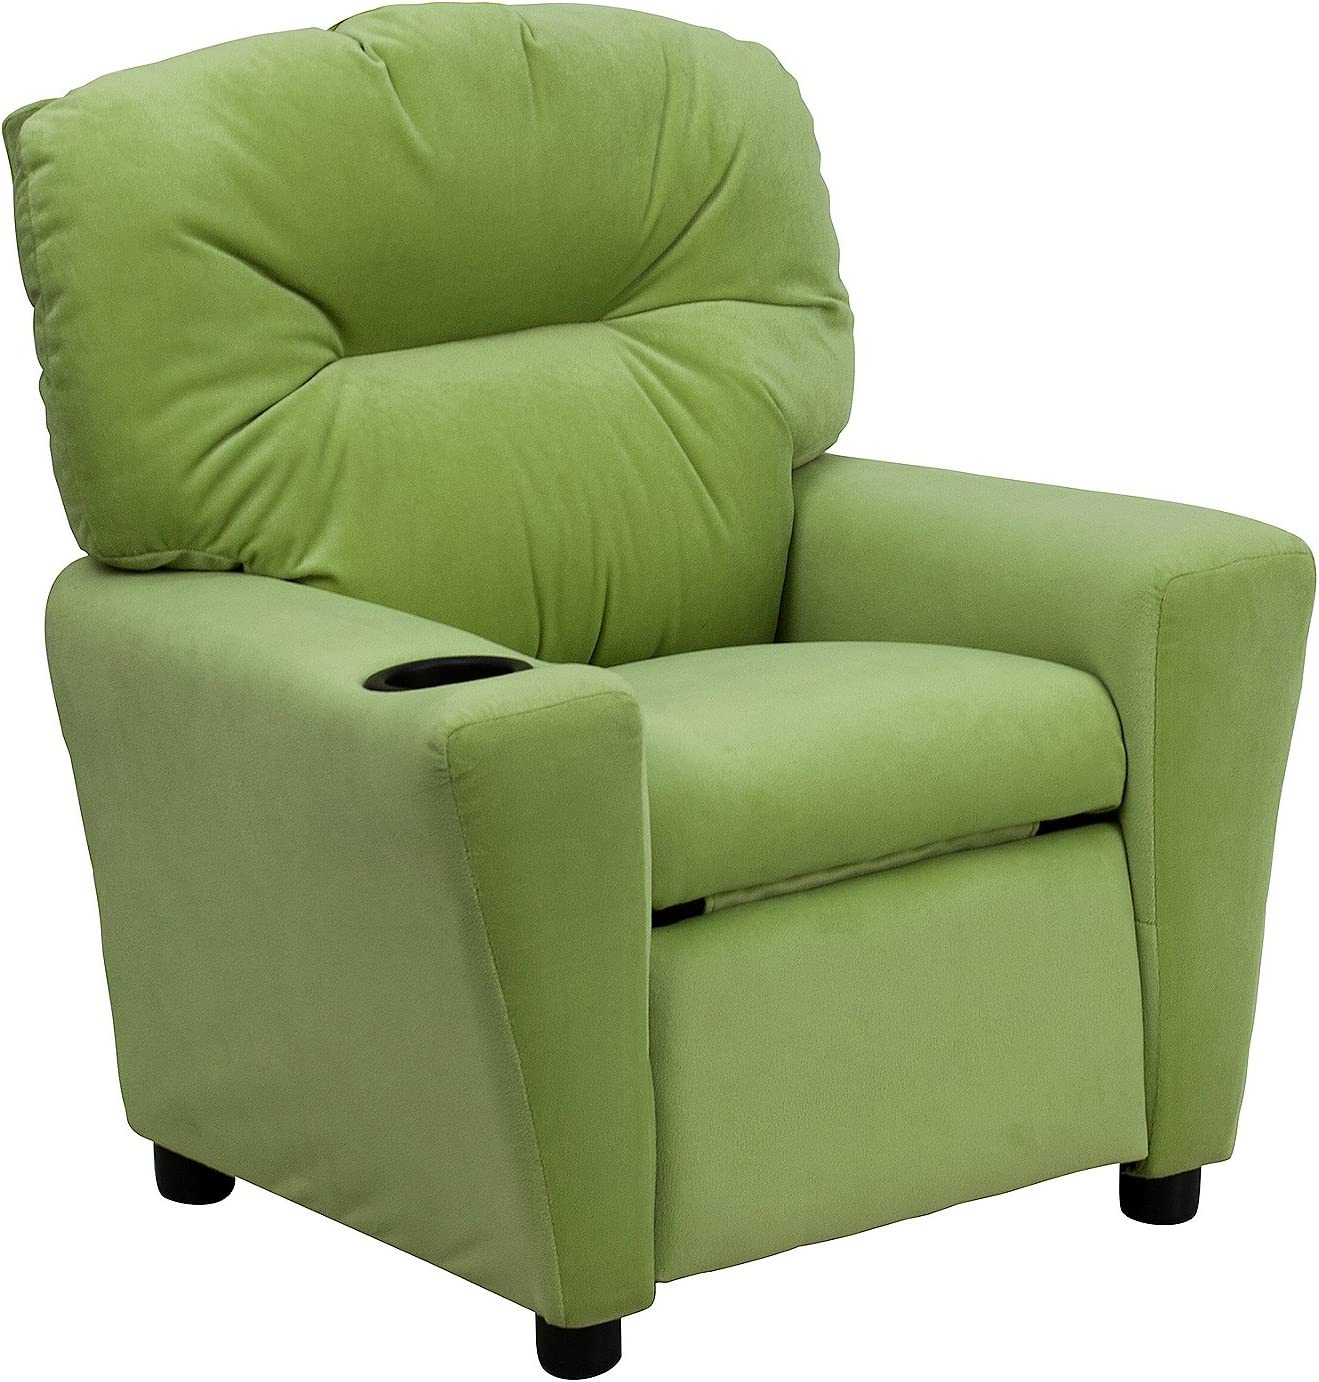 Flash Furniture Contemporary Avocado Microfiber Kids Recliner with Cup Holder [BT-7950-KID-MIC-AVO-GG]